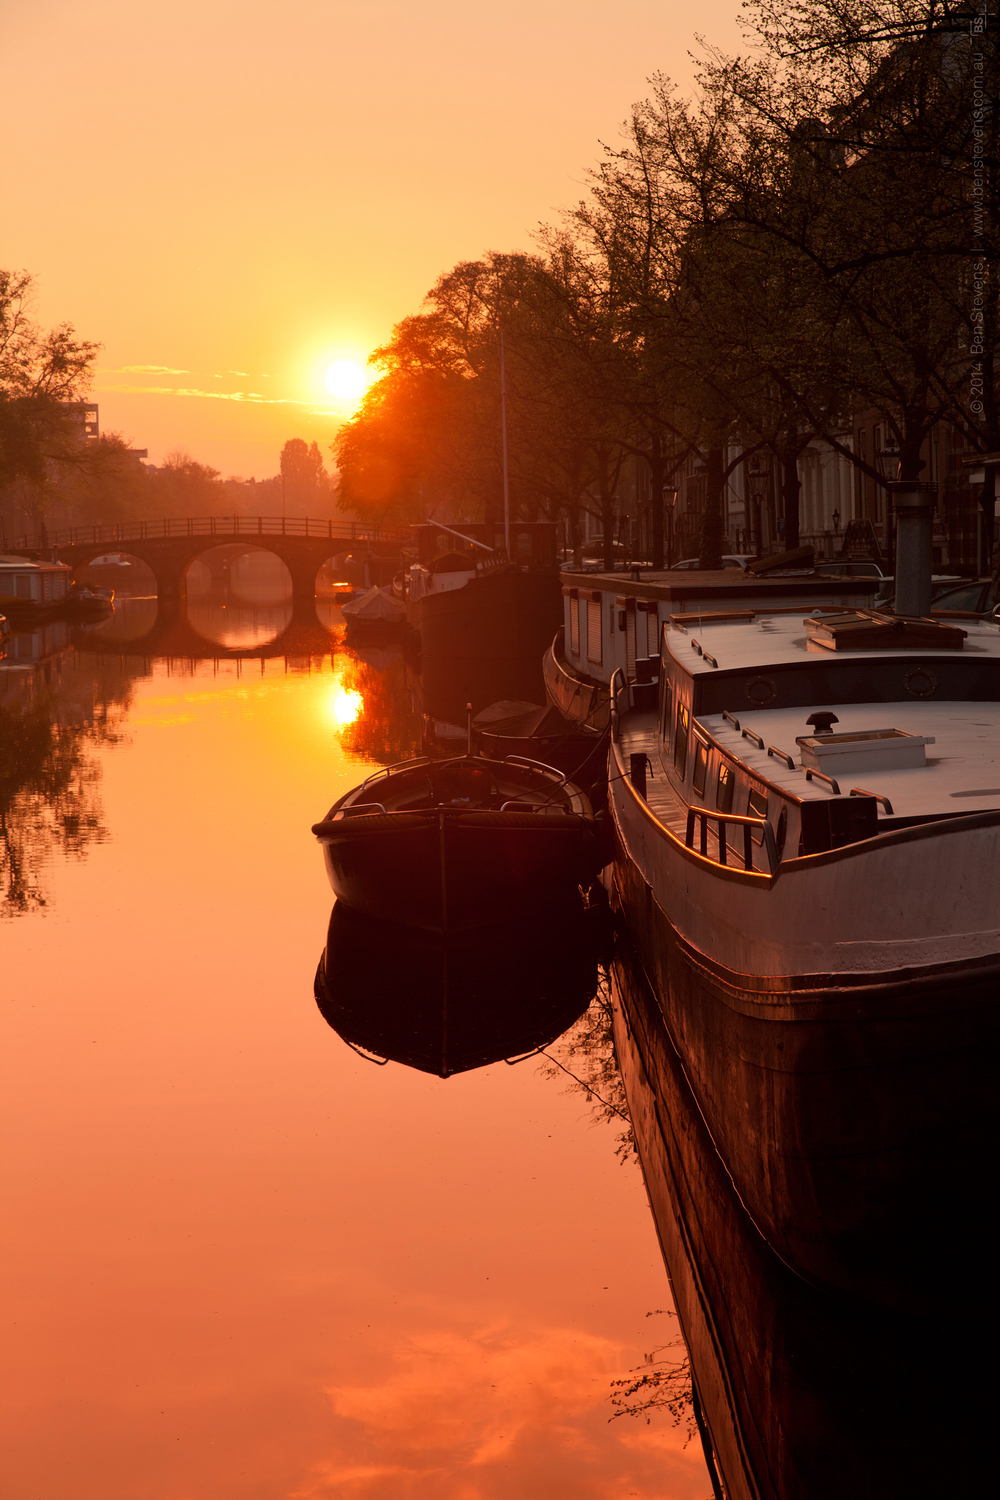 Quiet Canal |Amsterdam, Netherlands April 2014 The sun risesover one of the many canals in Amsterdam. At this early hour the city is usually calm and quiet, with a few bicycle bells the only noise breaking the silence. Purchase printshere